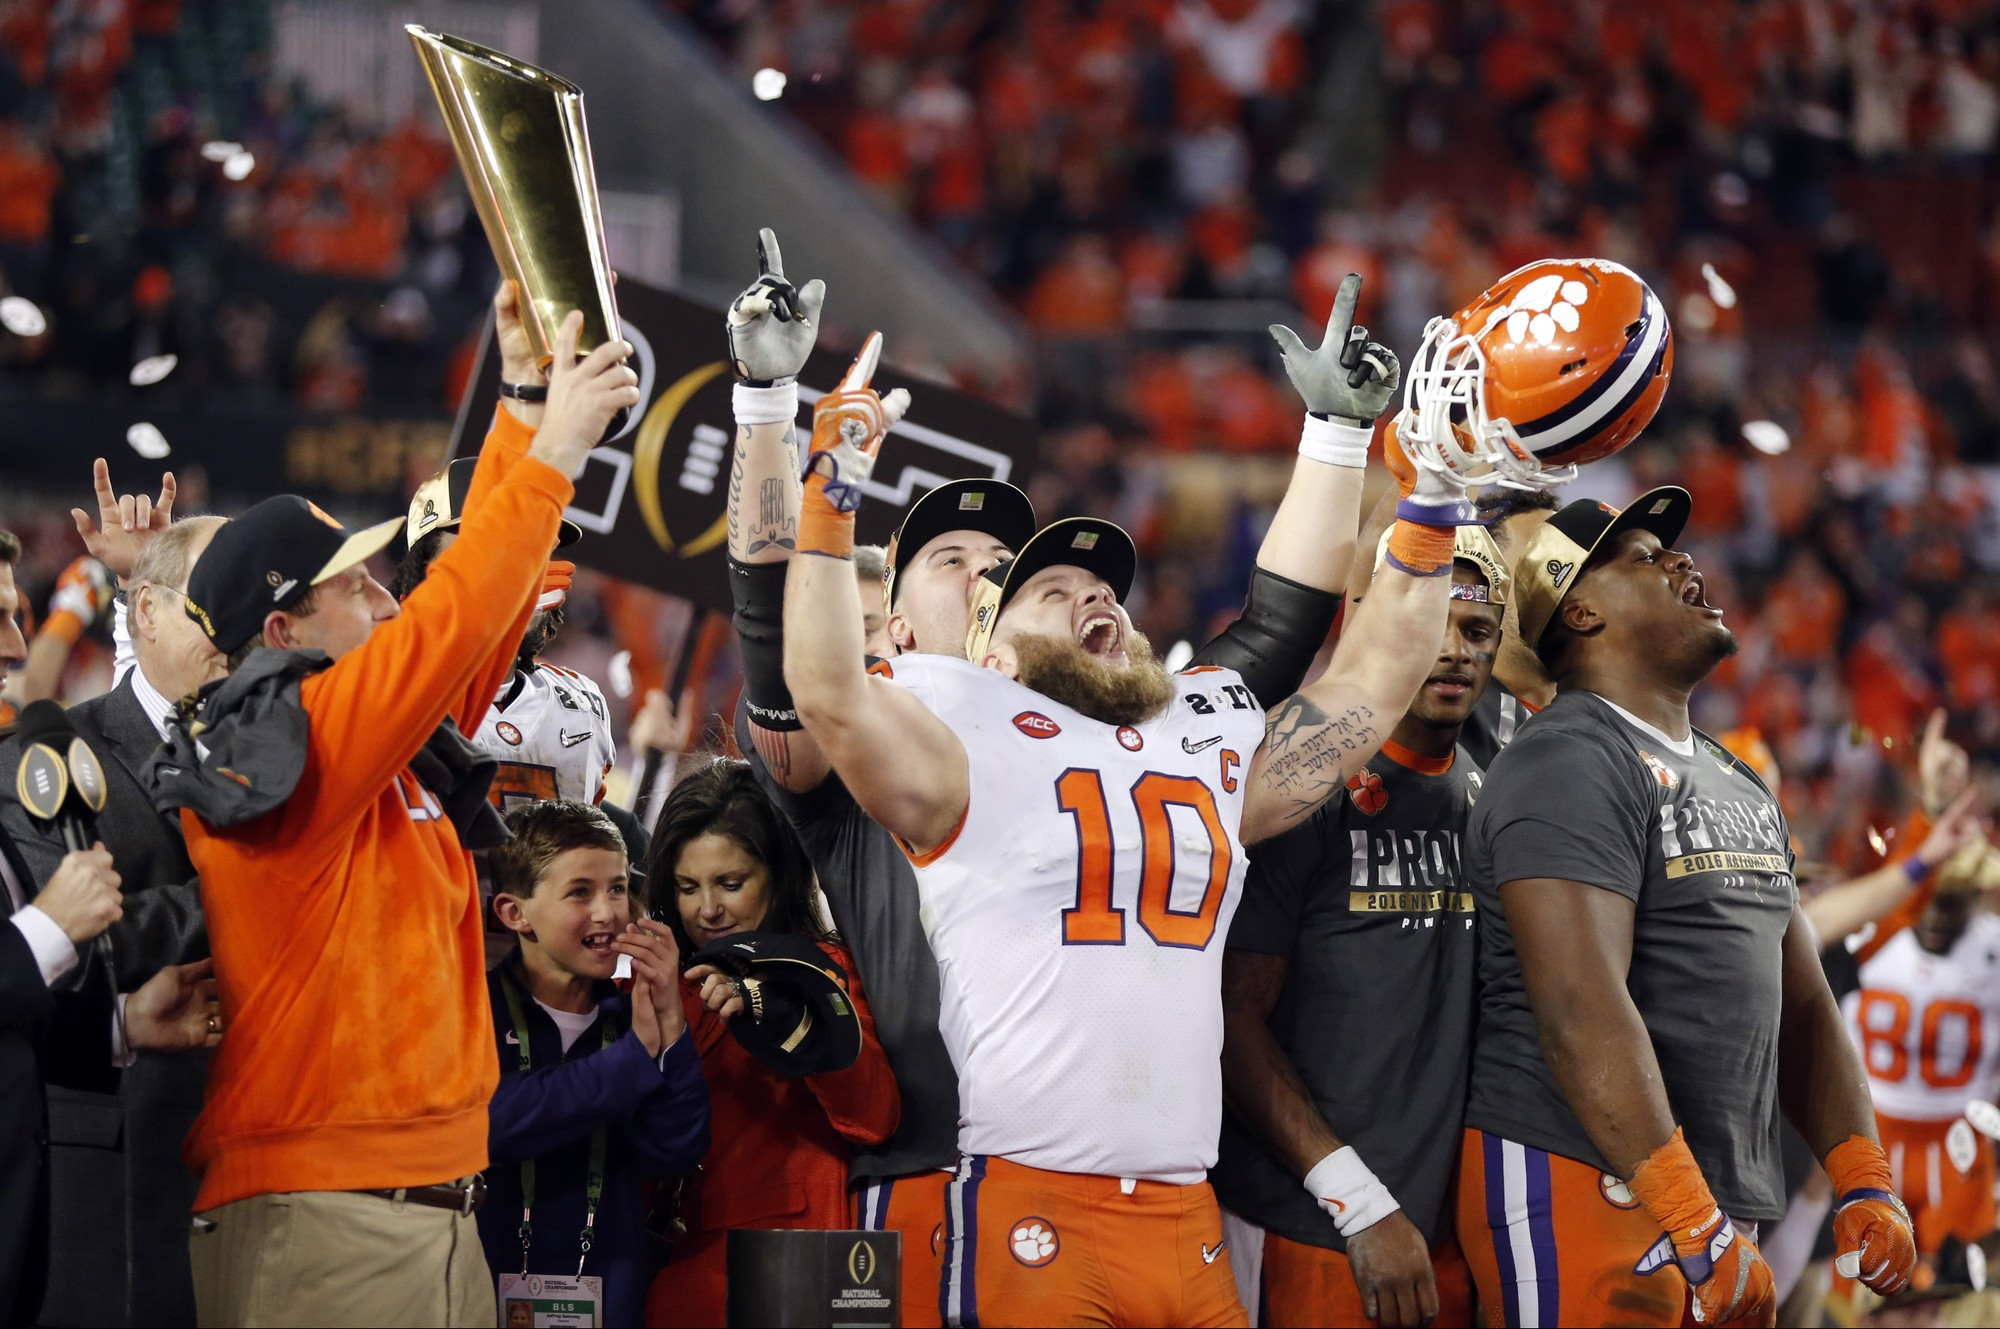 Clemson wins the College Football Playoff National Championship